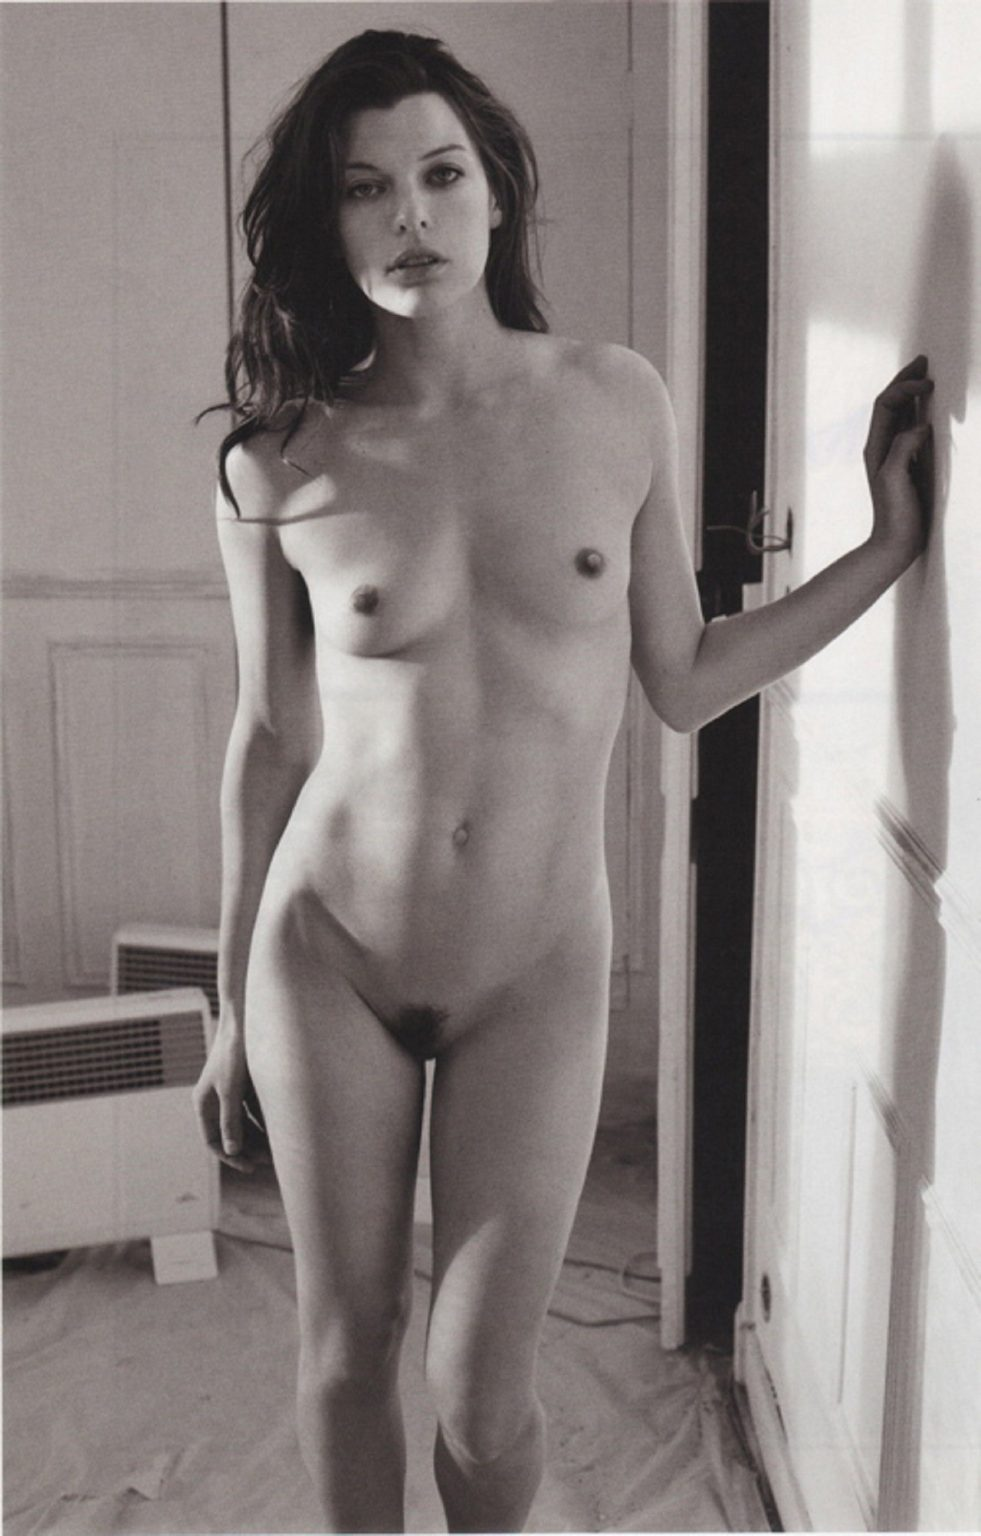 Looking the best of full frontal female nudity celebs out